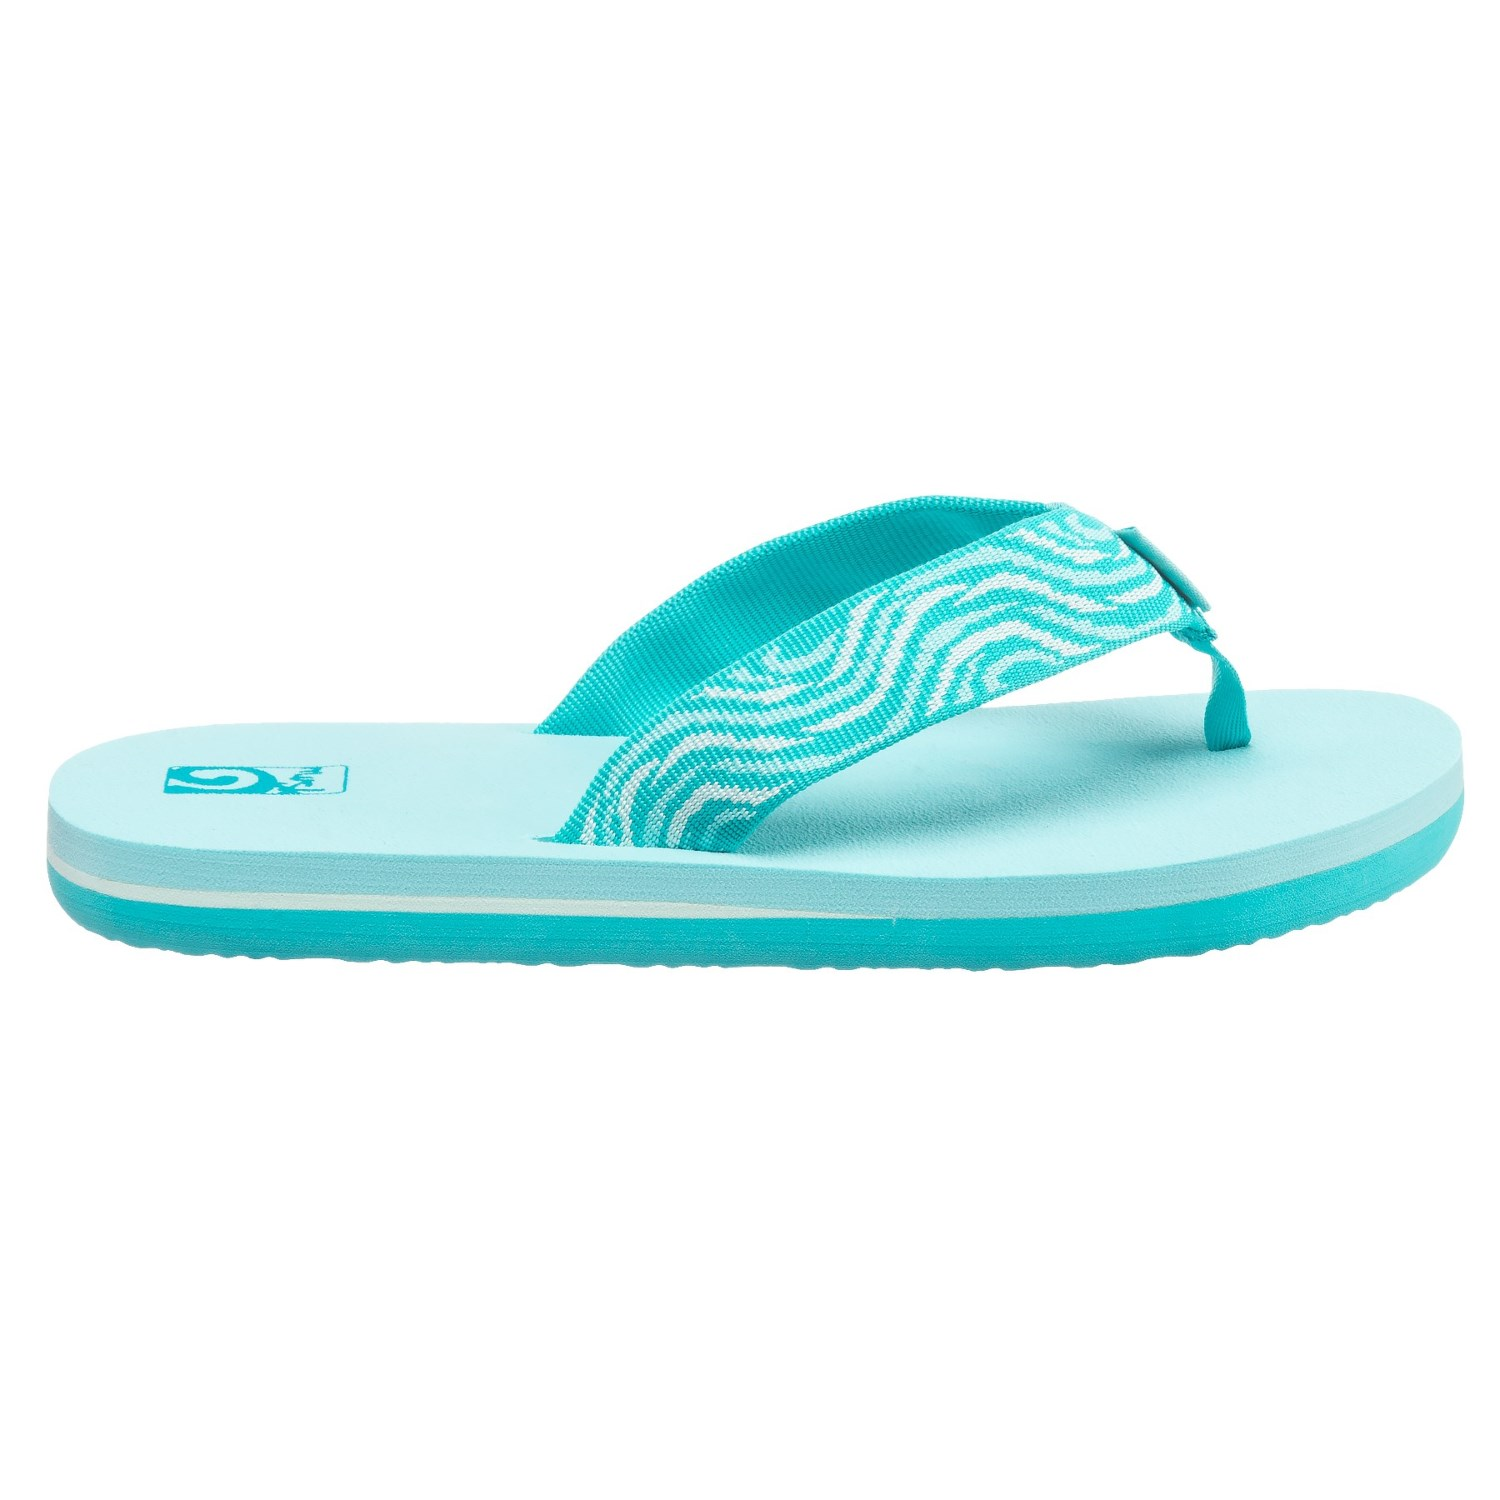 c666b1fa8247 Teva Mush® II Flip-Flops (For Girls) - Save 50%